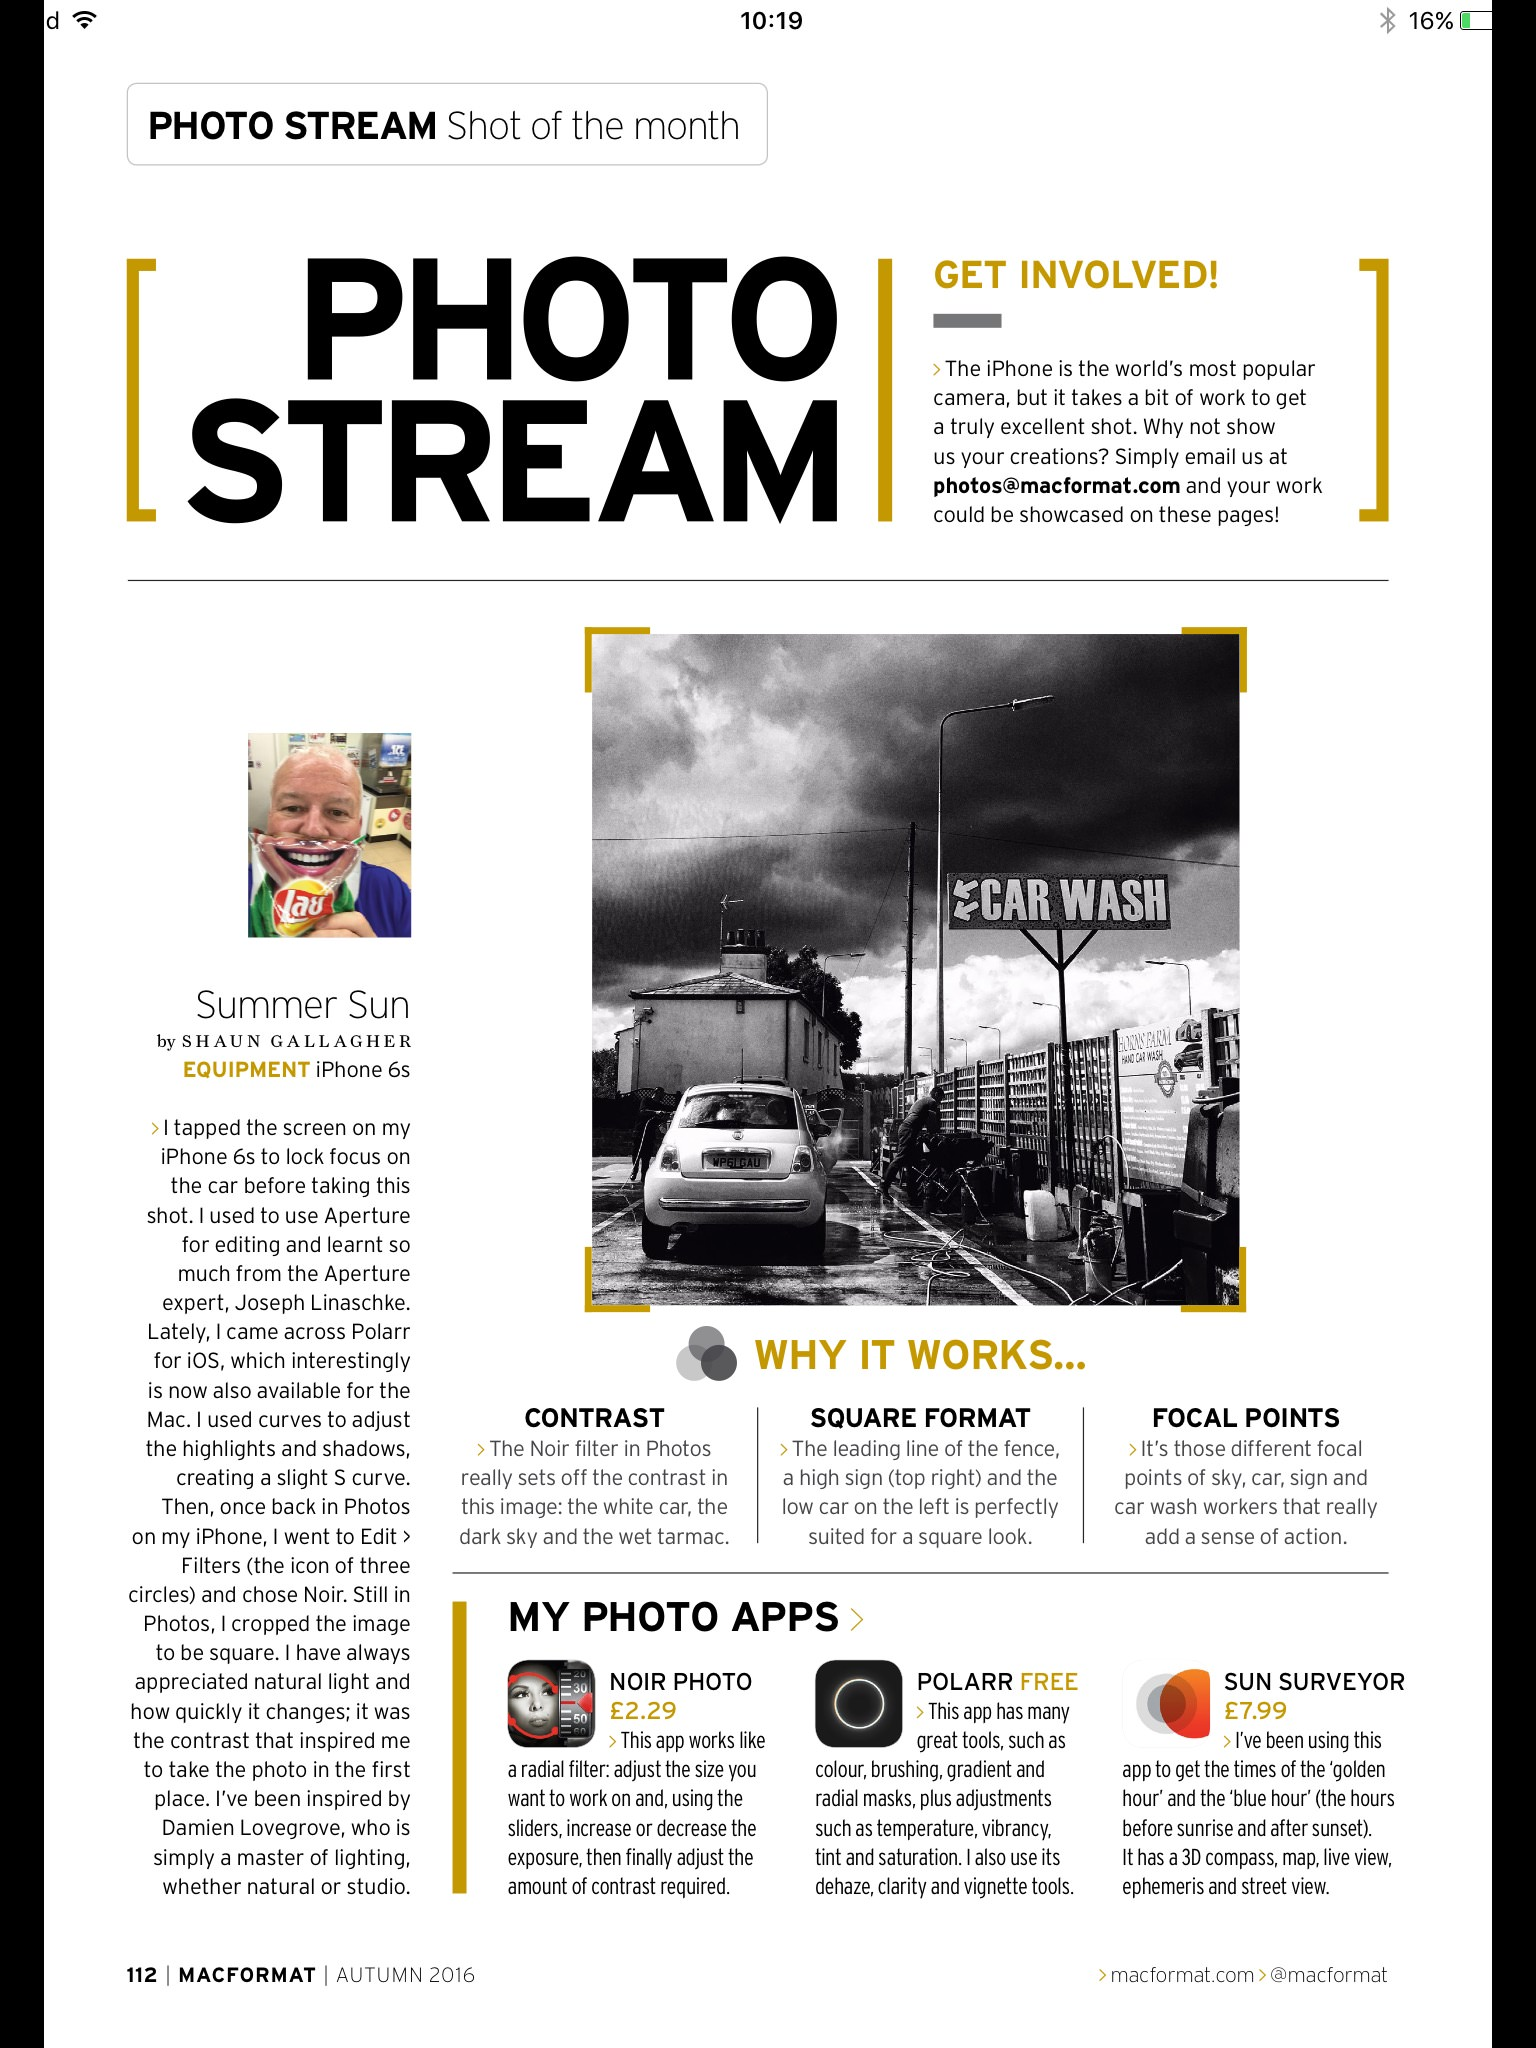 MacFormat UK Photo Stream Shot of the Month page 1